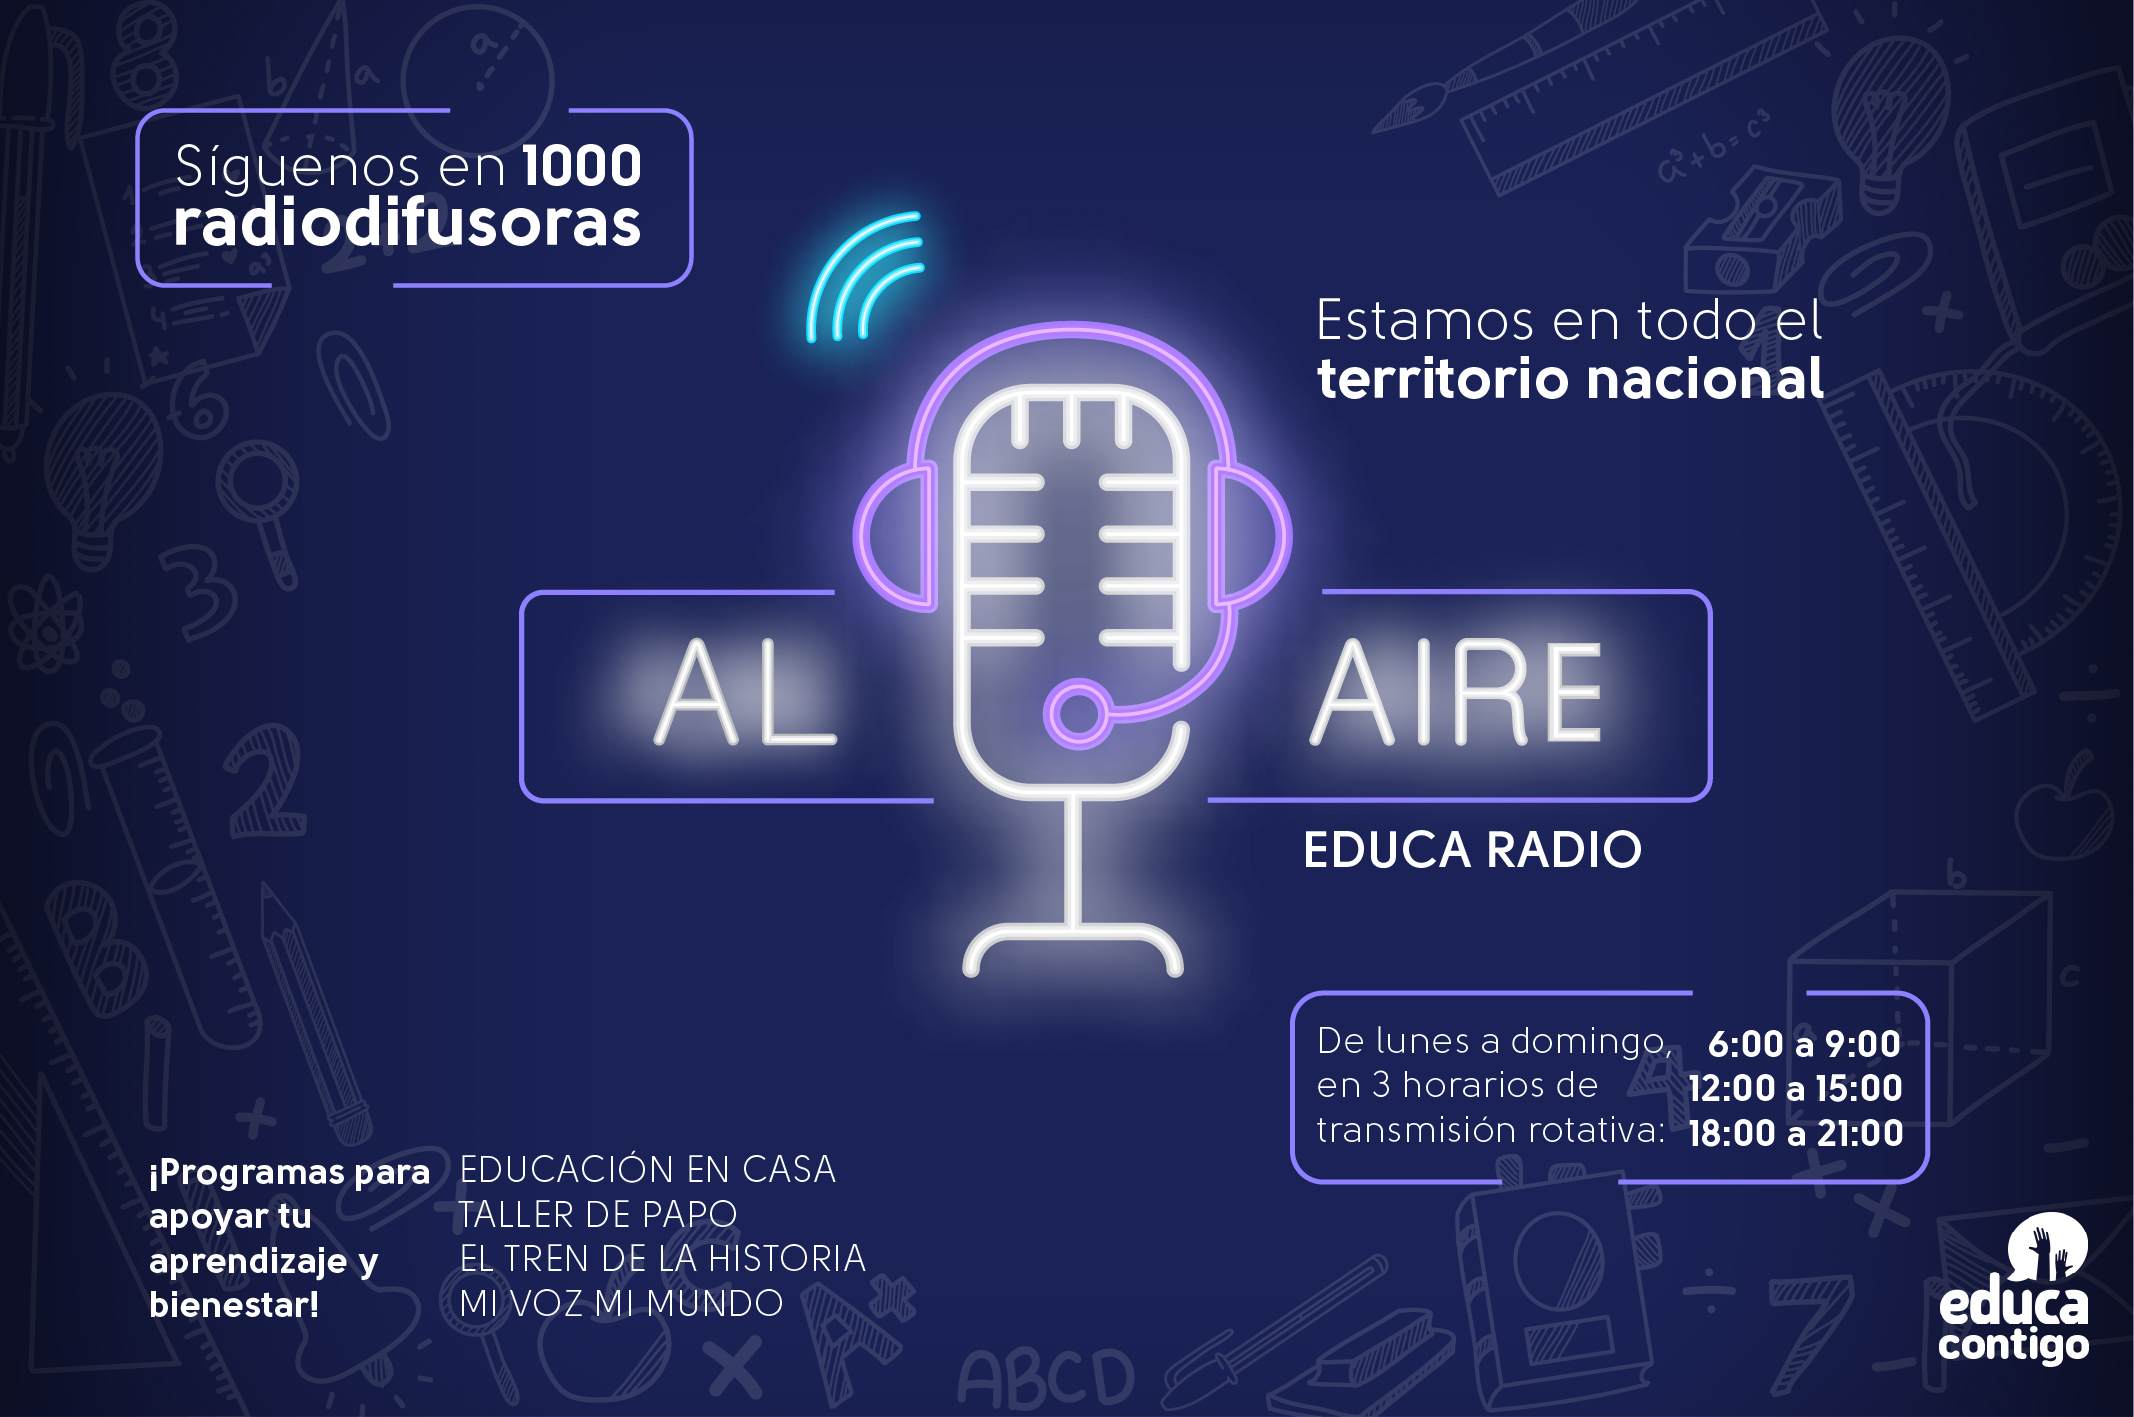 DOMINGO AUDIO CLASES (Tarde)